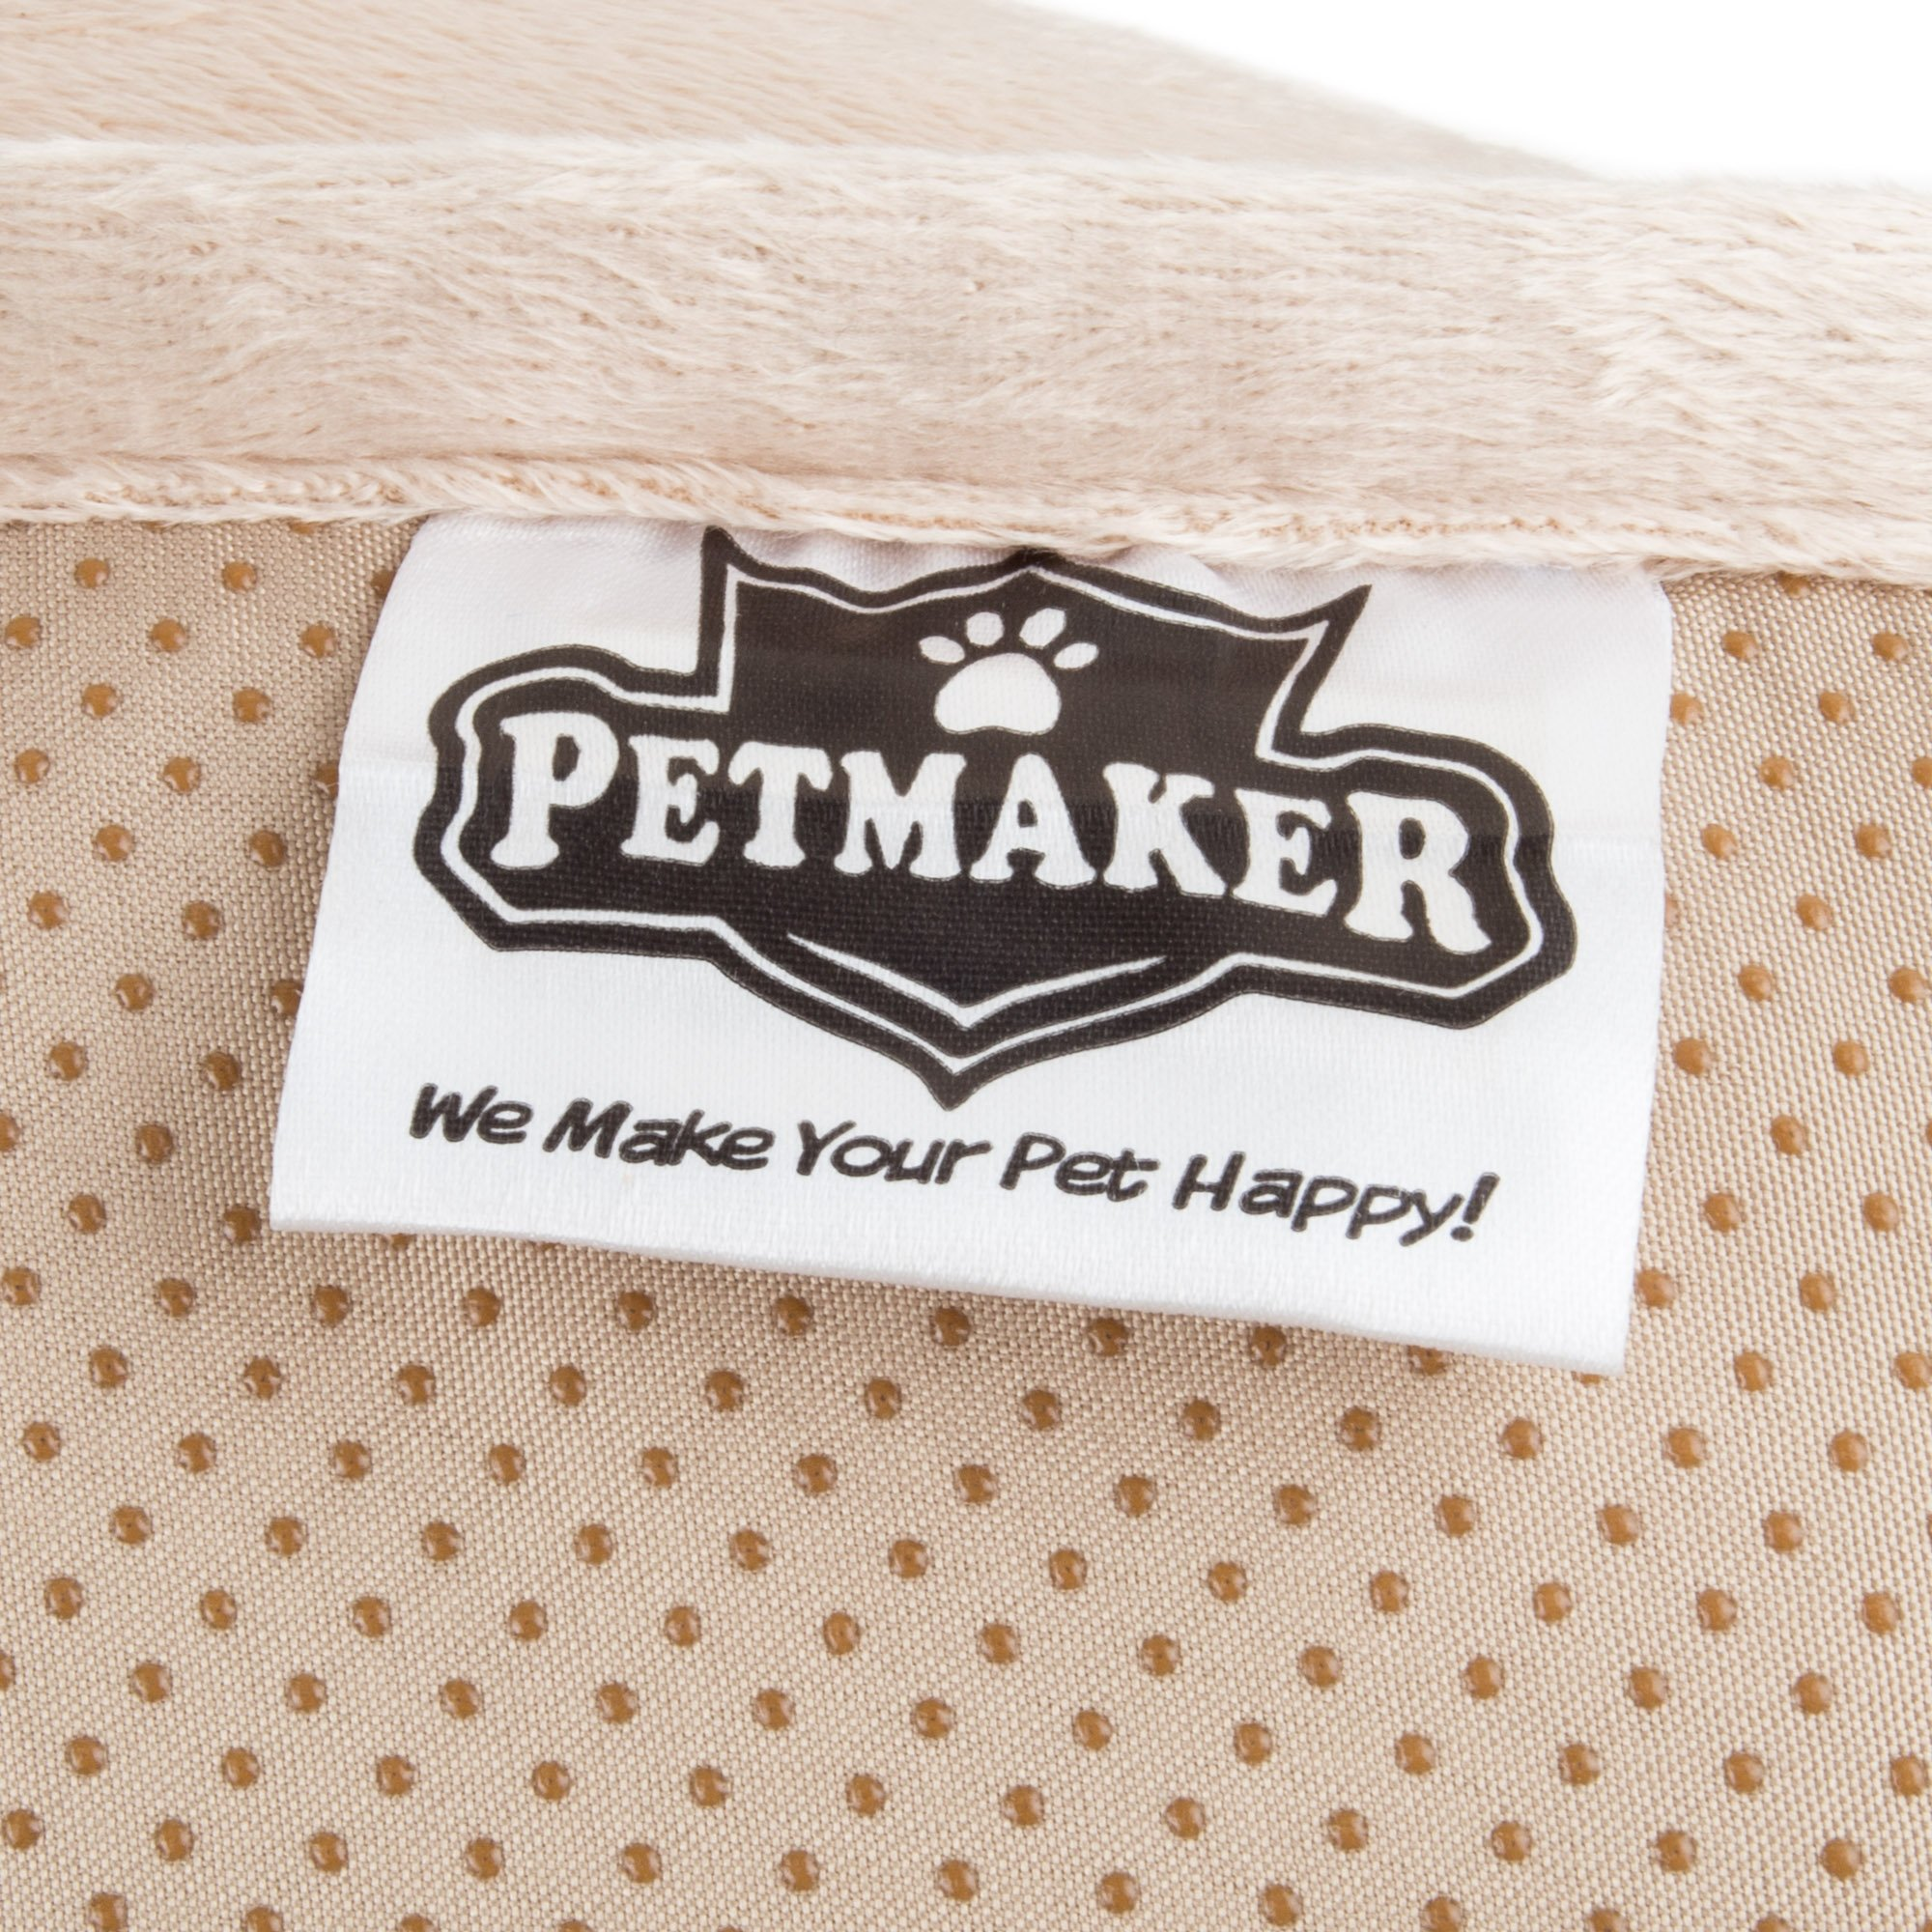 Furniture Protector Pet Cover for Dogs and Cats with Shredded Memory Foam filled 3-Sided Bolster Soft Plush Fabric by PETMAKER Â- 35Â'' x 35Â'' Beige by PETMAKER (Image #5)